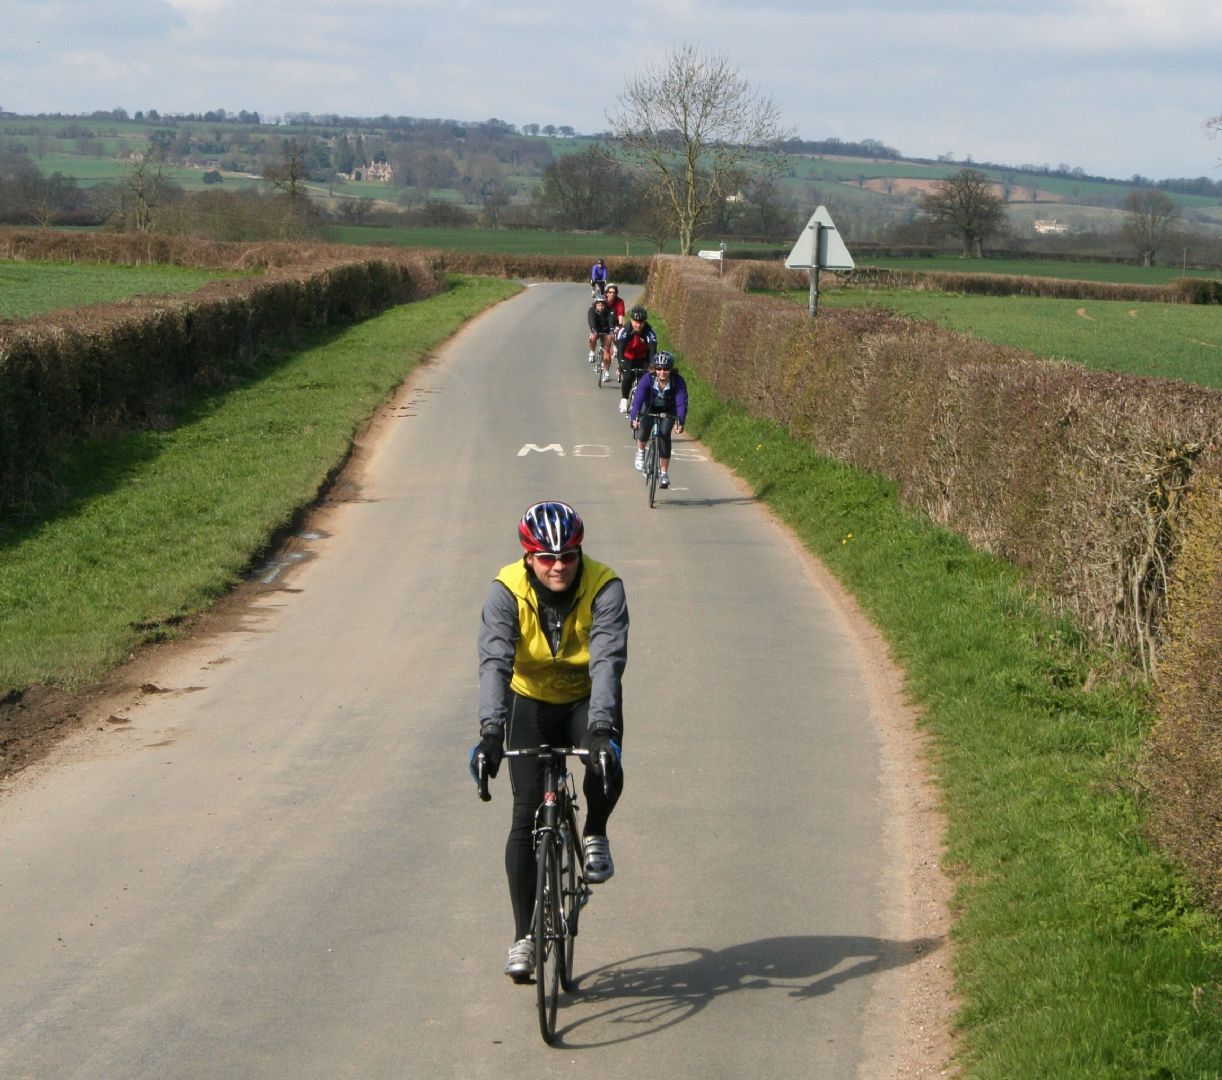 Chilterns Road Cycling Weekend 16.JPG - UK - Chilterns - Guided Road Cycling Weekend - Road Cycling